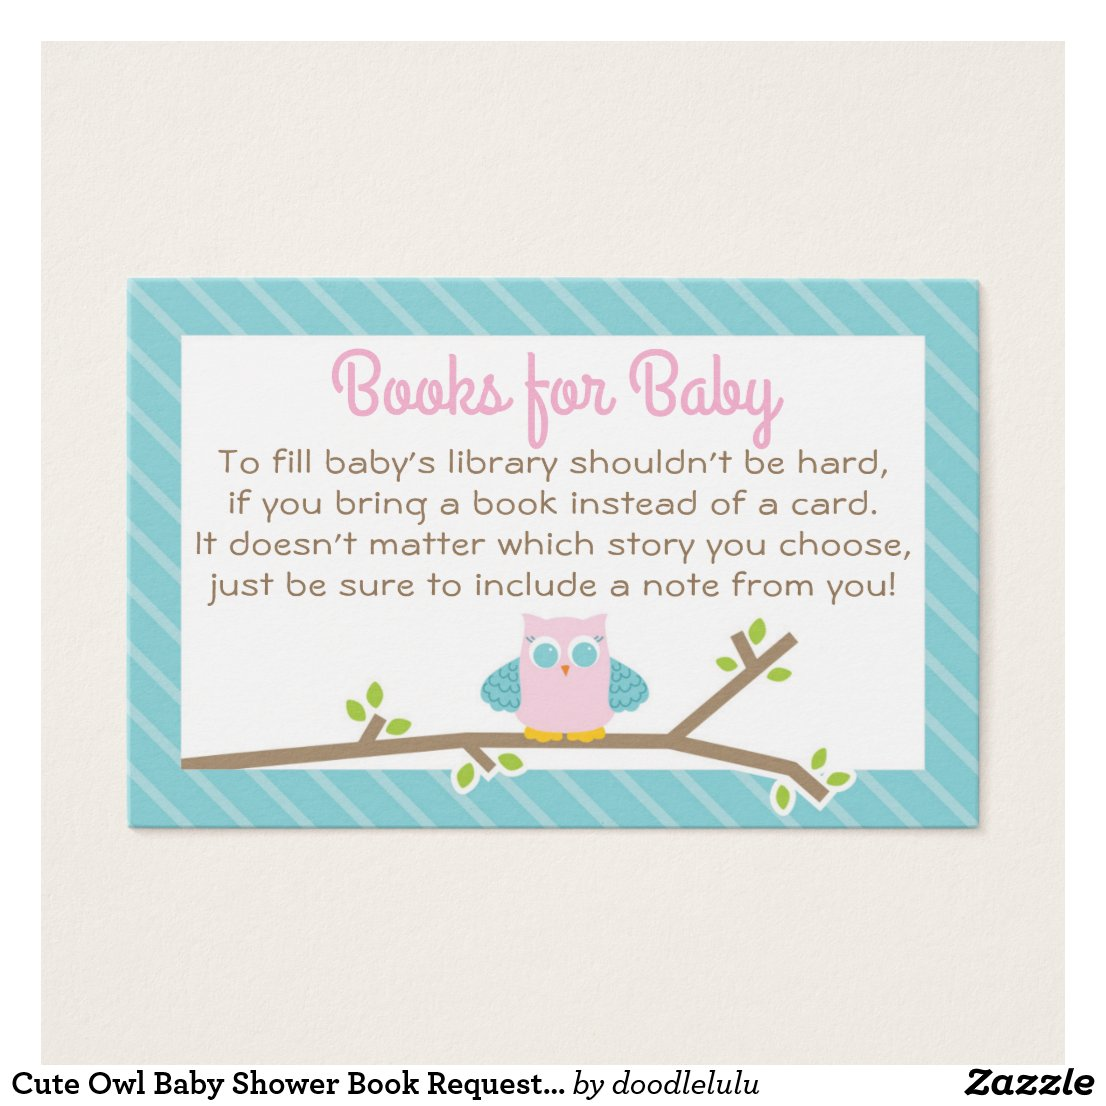 Cute Owl Baby Shower Book Request Card pink & blue